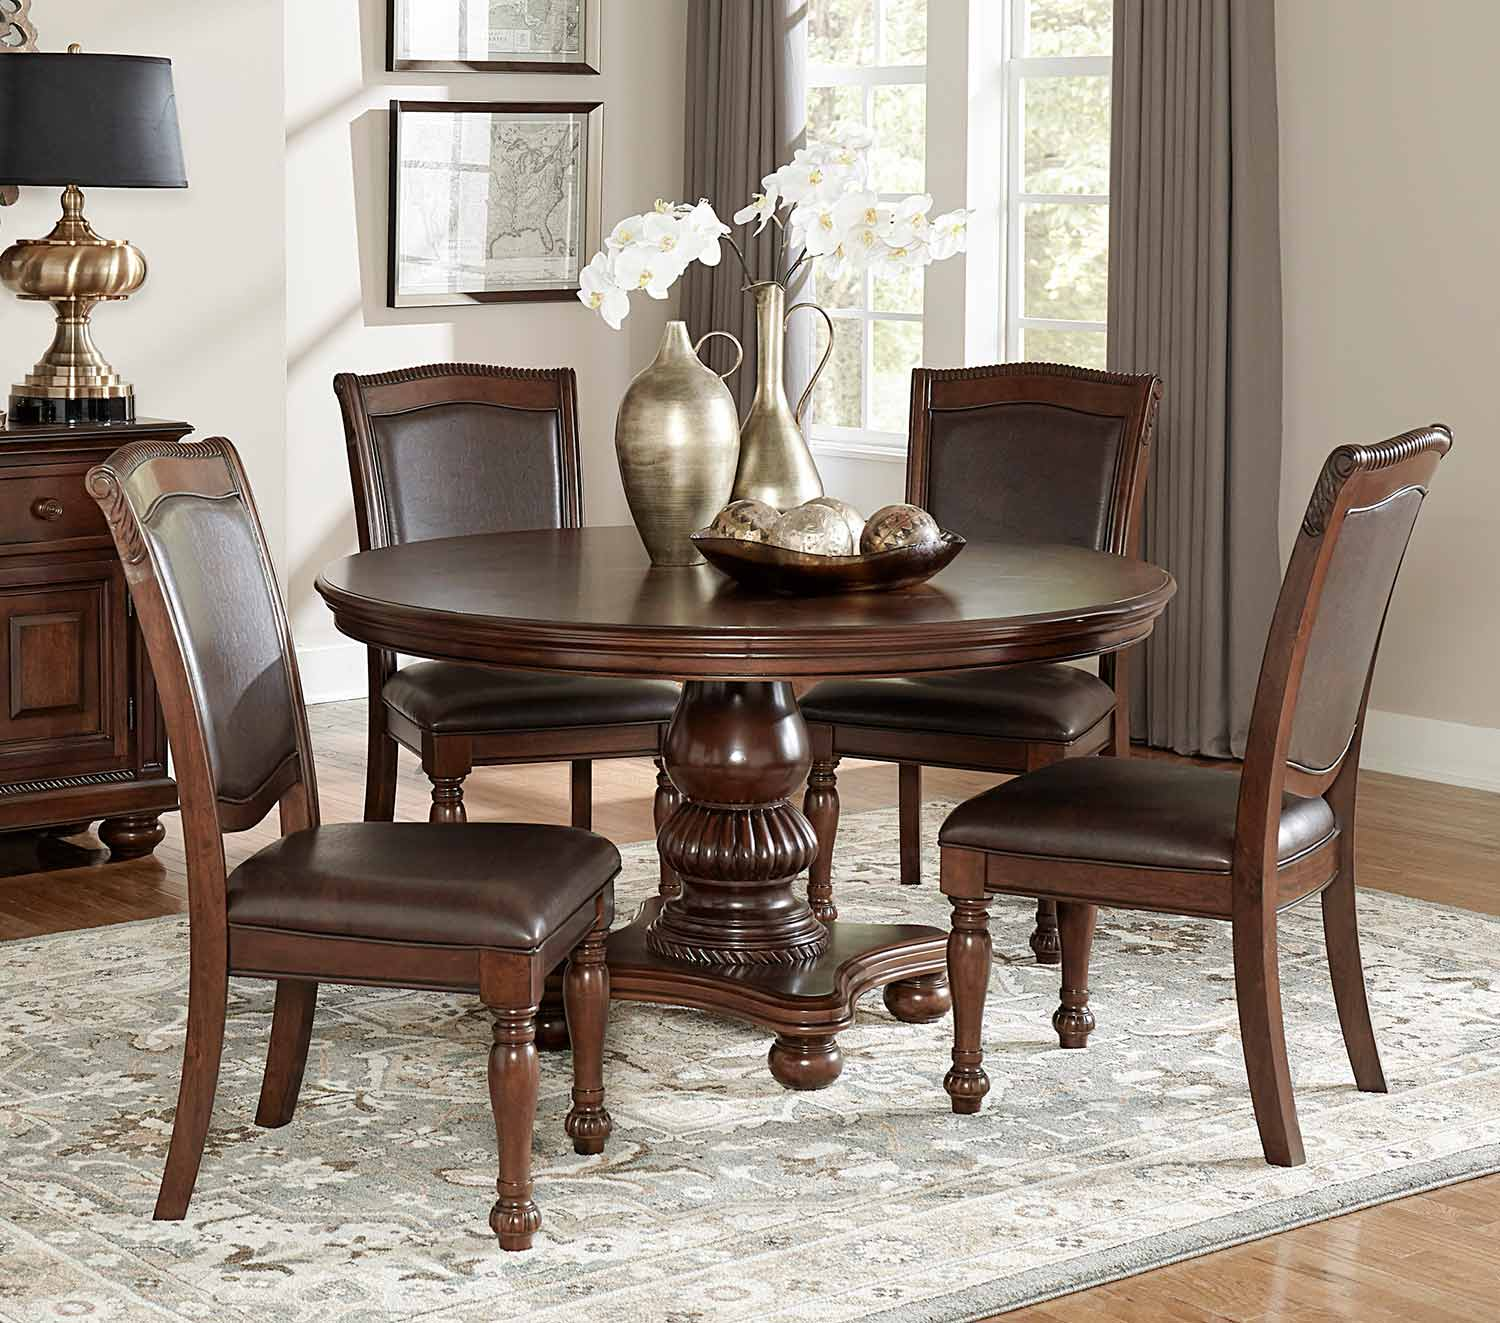 Homelegance Lordsburg Round Dining Set - Brown Cherry